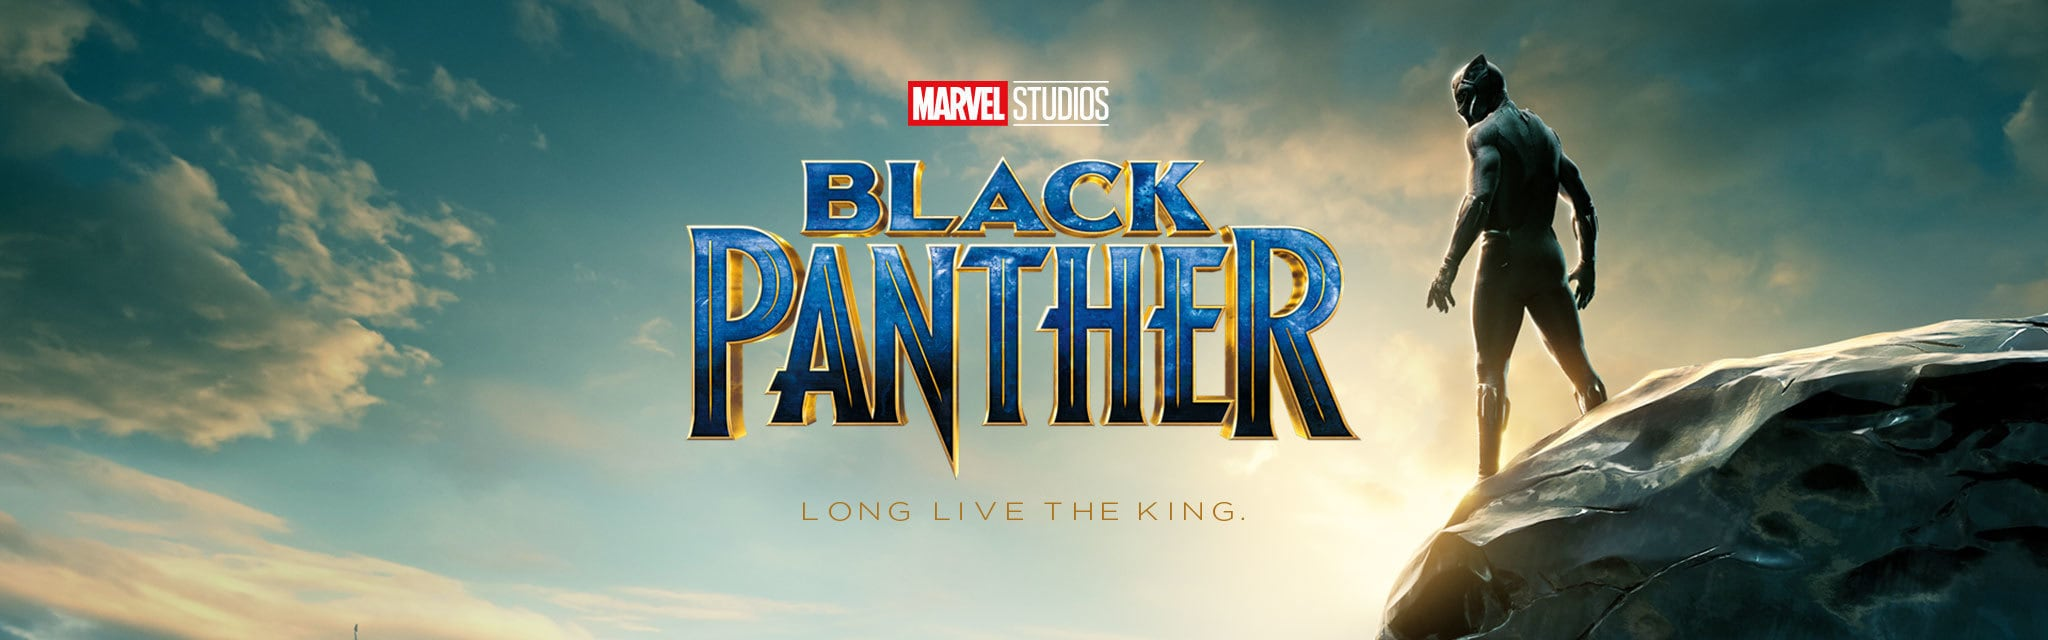 The Black Panther - In Cinemas Now - ID